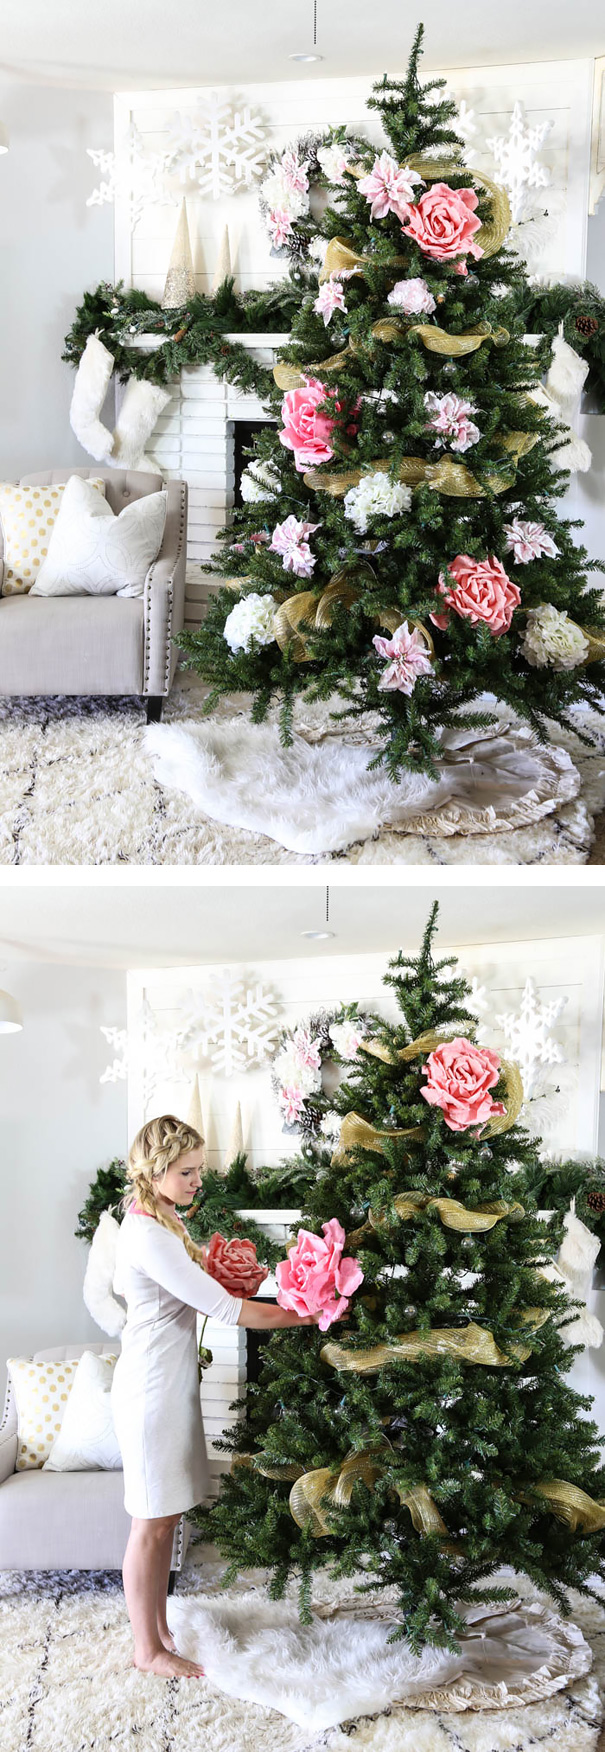 flower-floral-christmas-tree-decorations-4